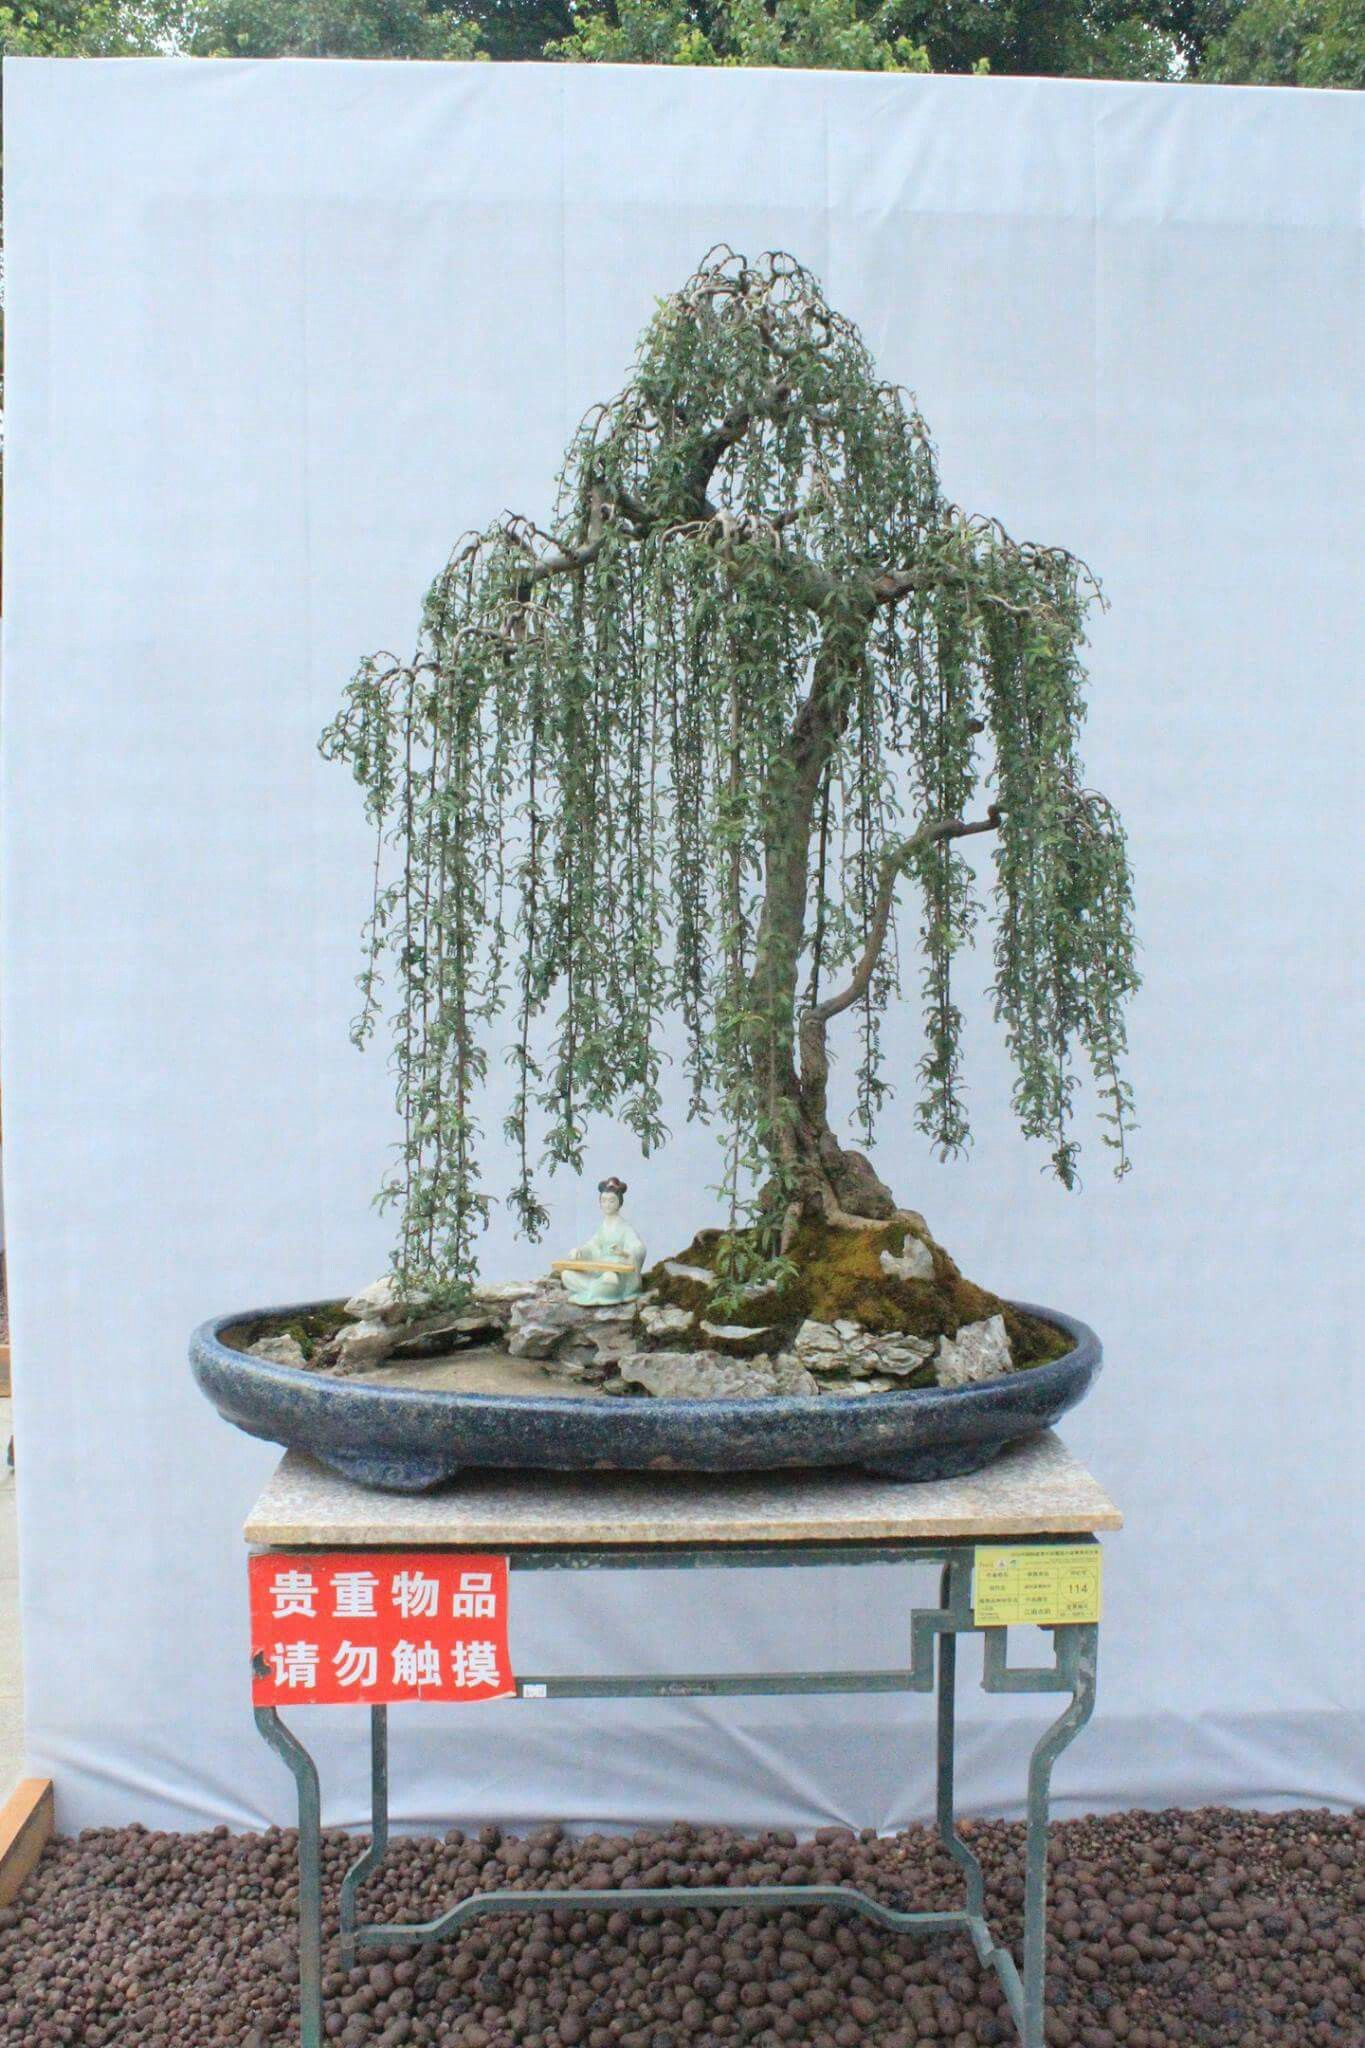 Find this Pin and more on bonsai